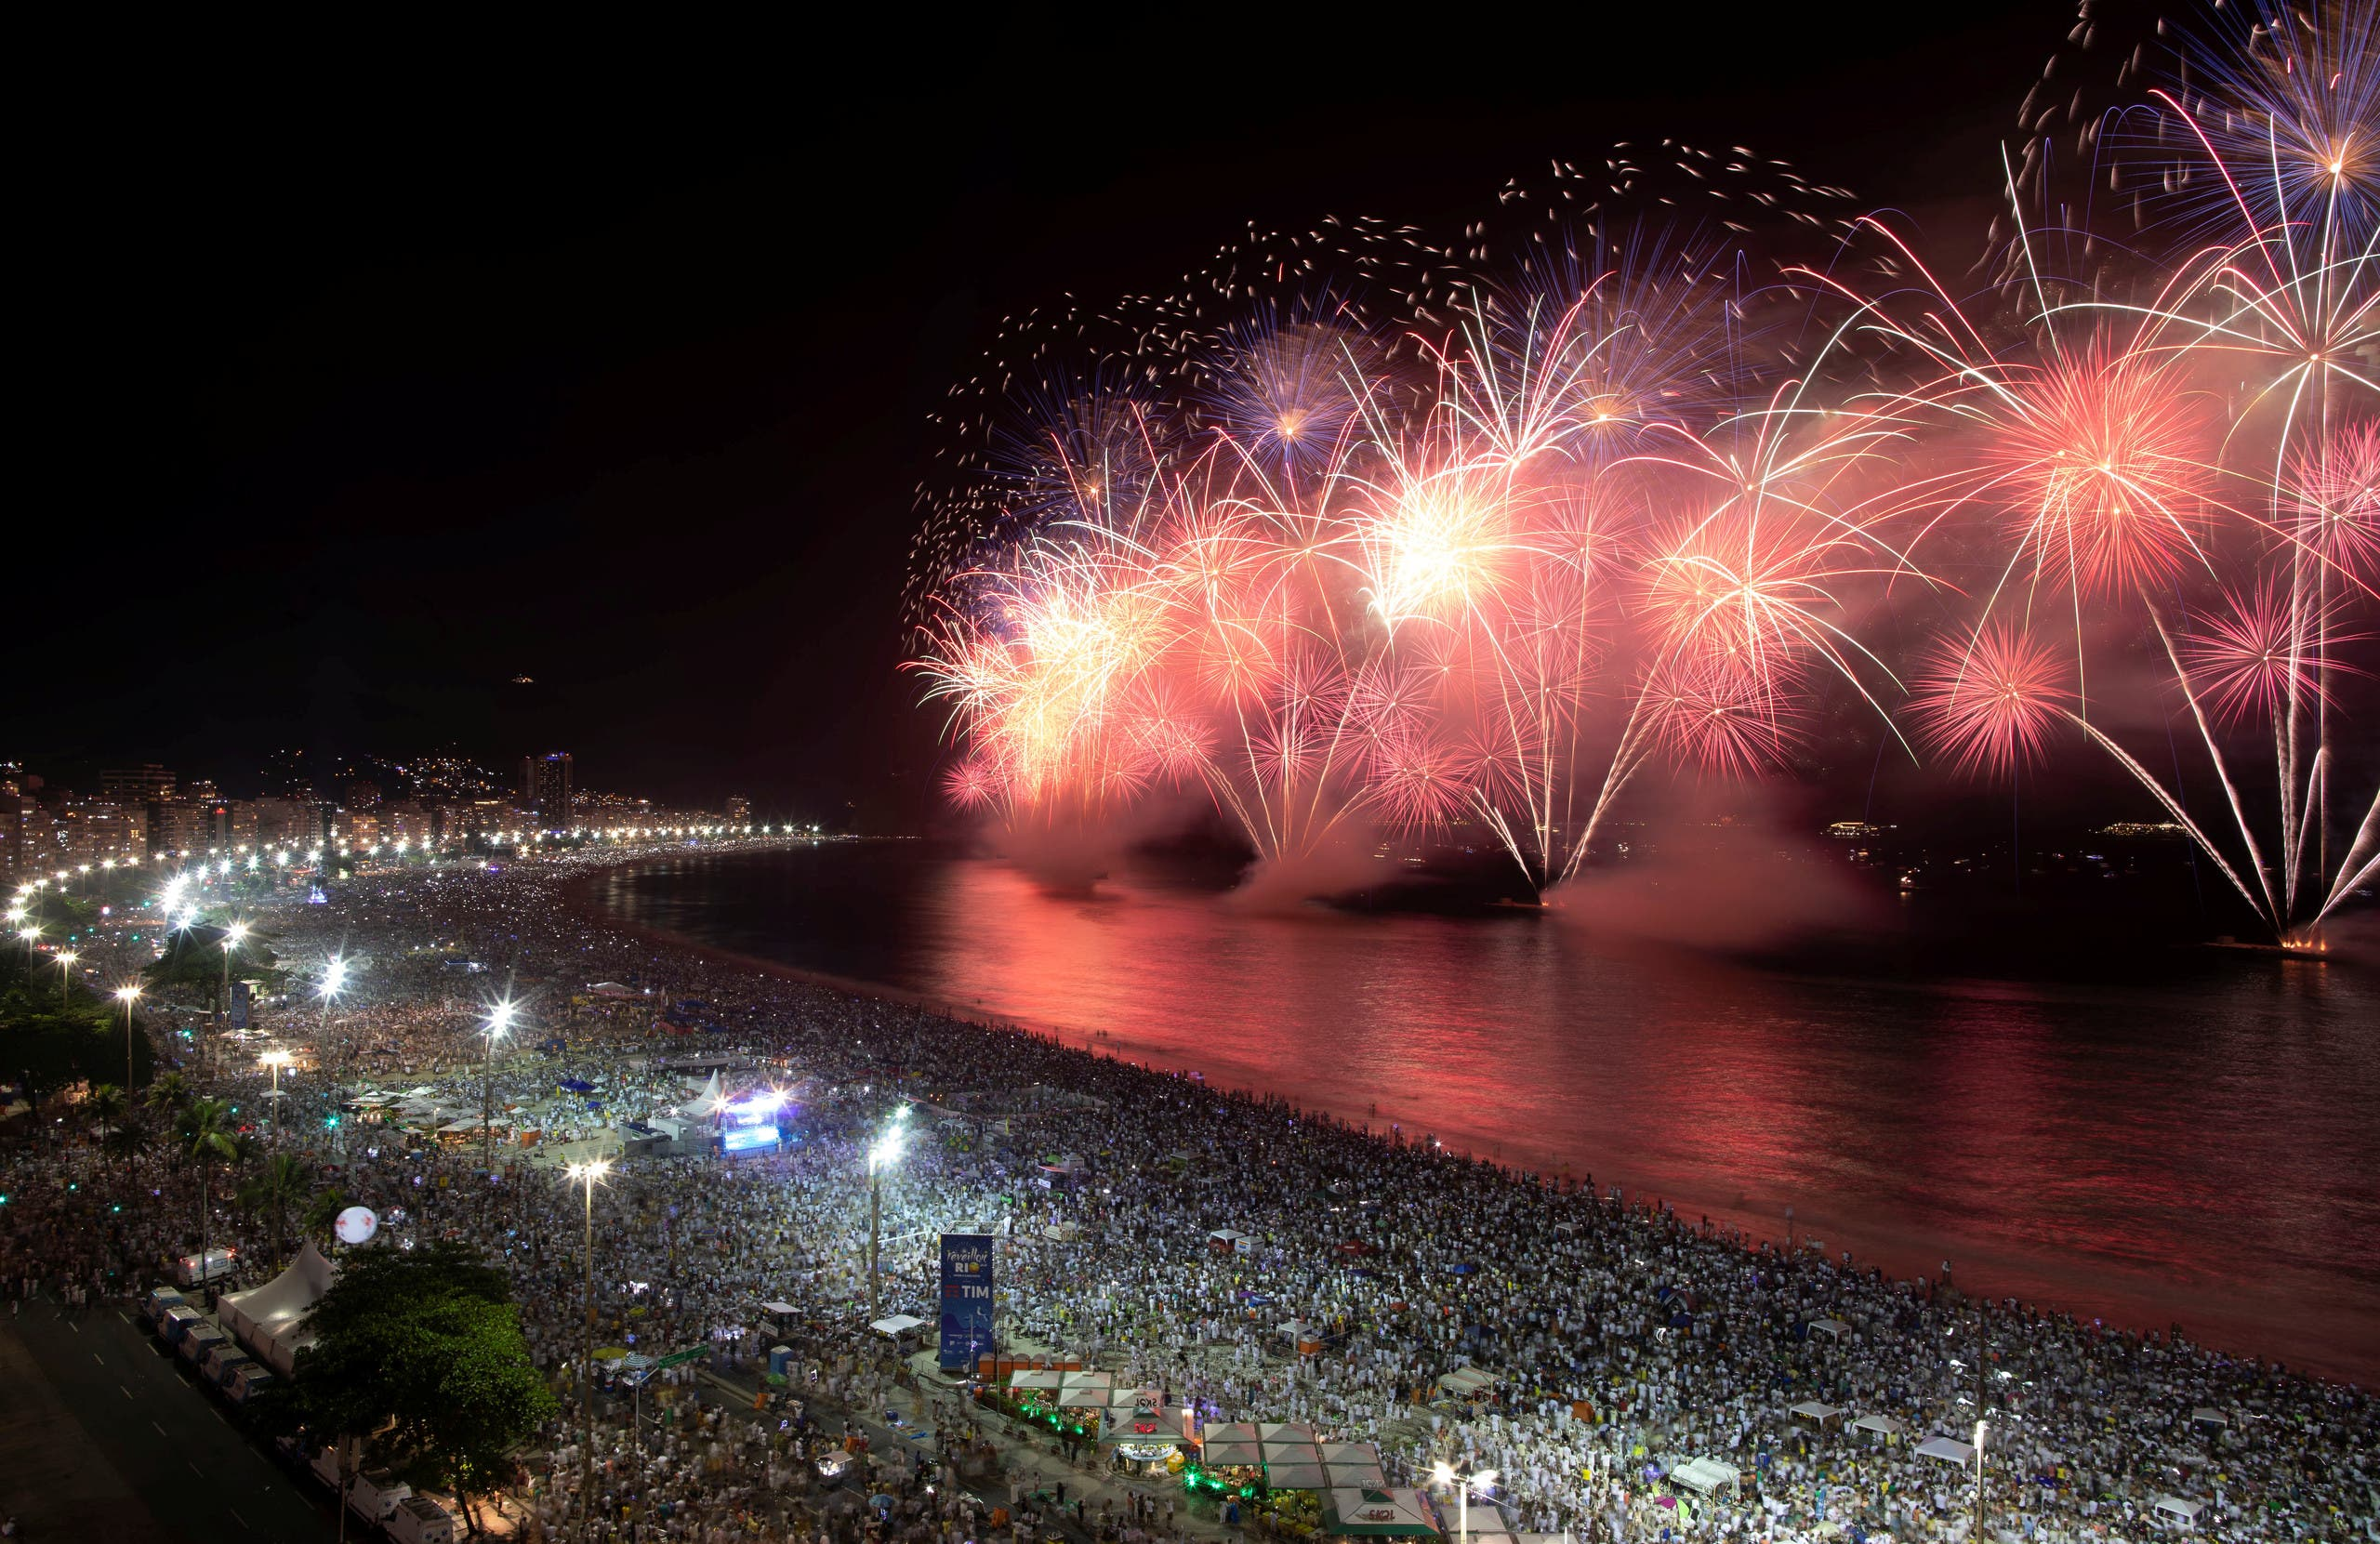 Fireworks explode over Copacabana beach during New Year celebrations in Rio de Janeiro. (Photo: Reuters)